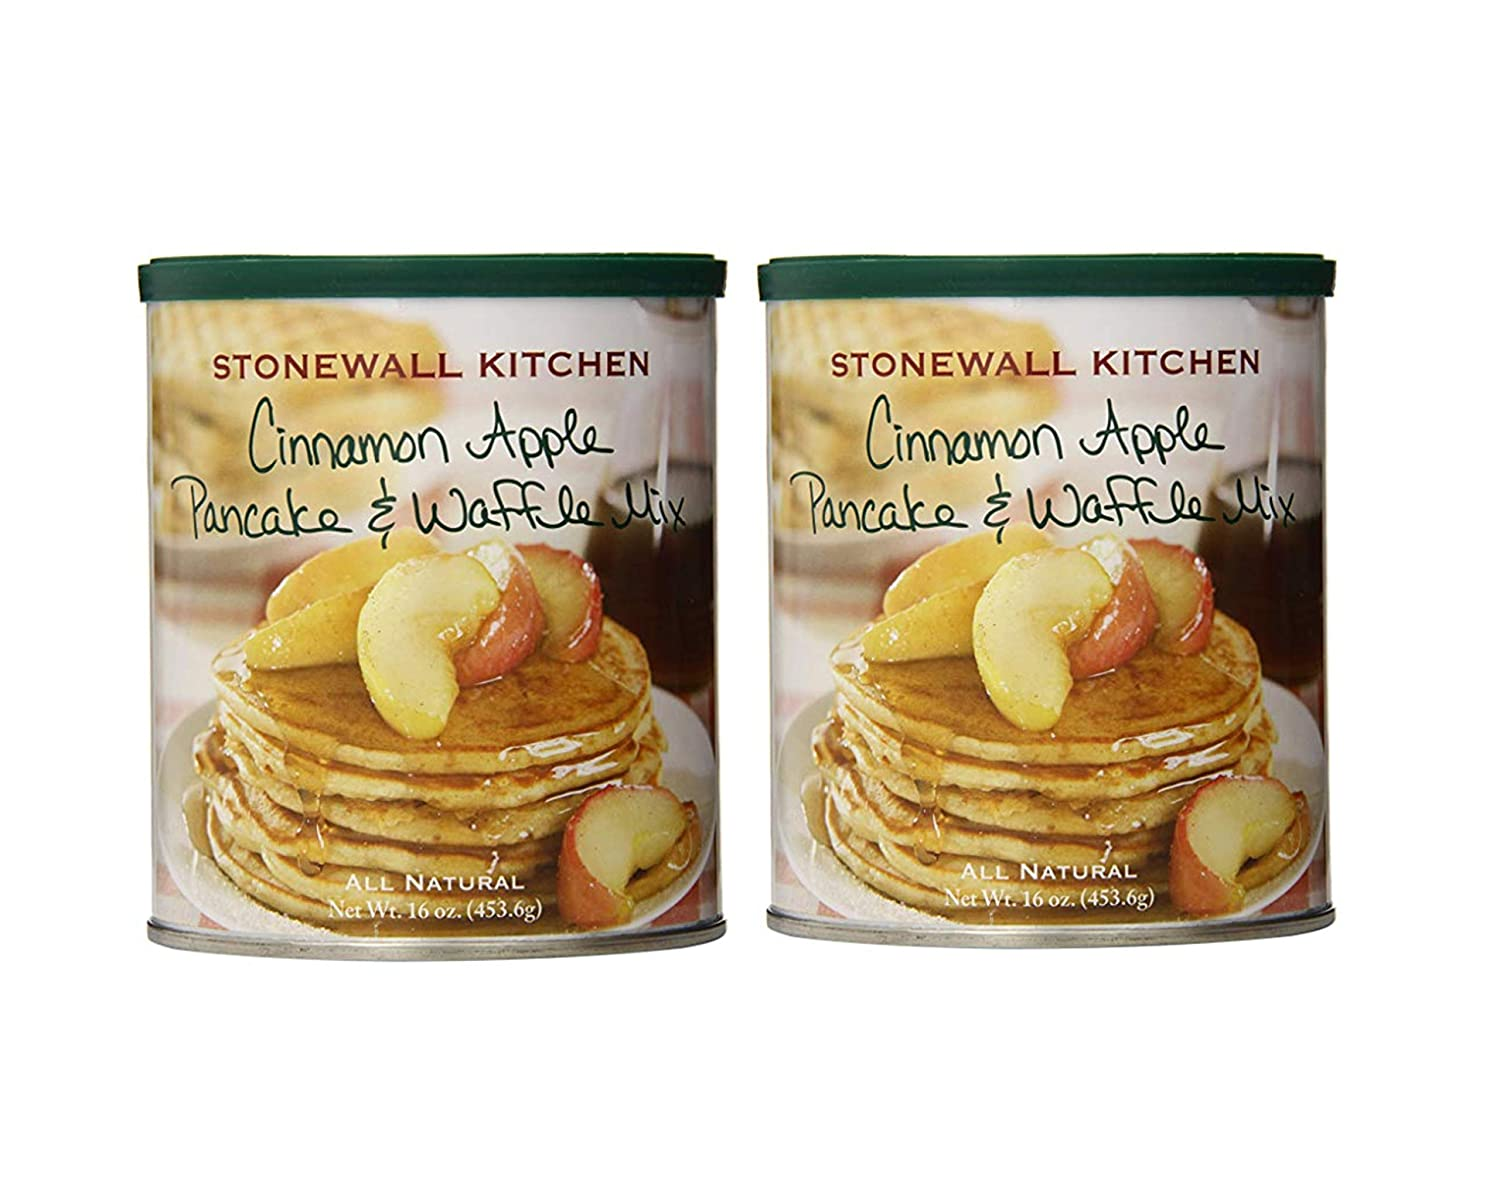 Stonewall Kitchen Cinnamon Apple Pancake Mix, Includes Two (2) 16 ounce cans